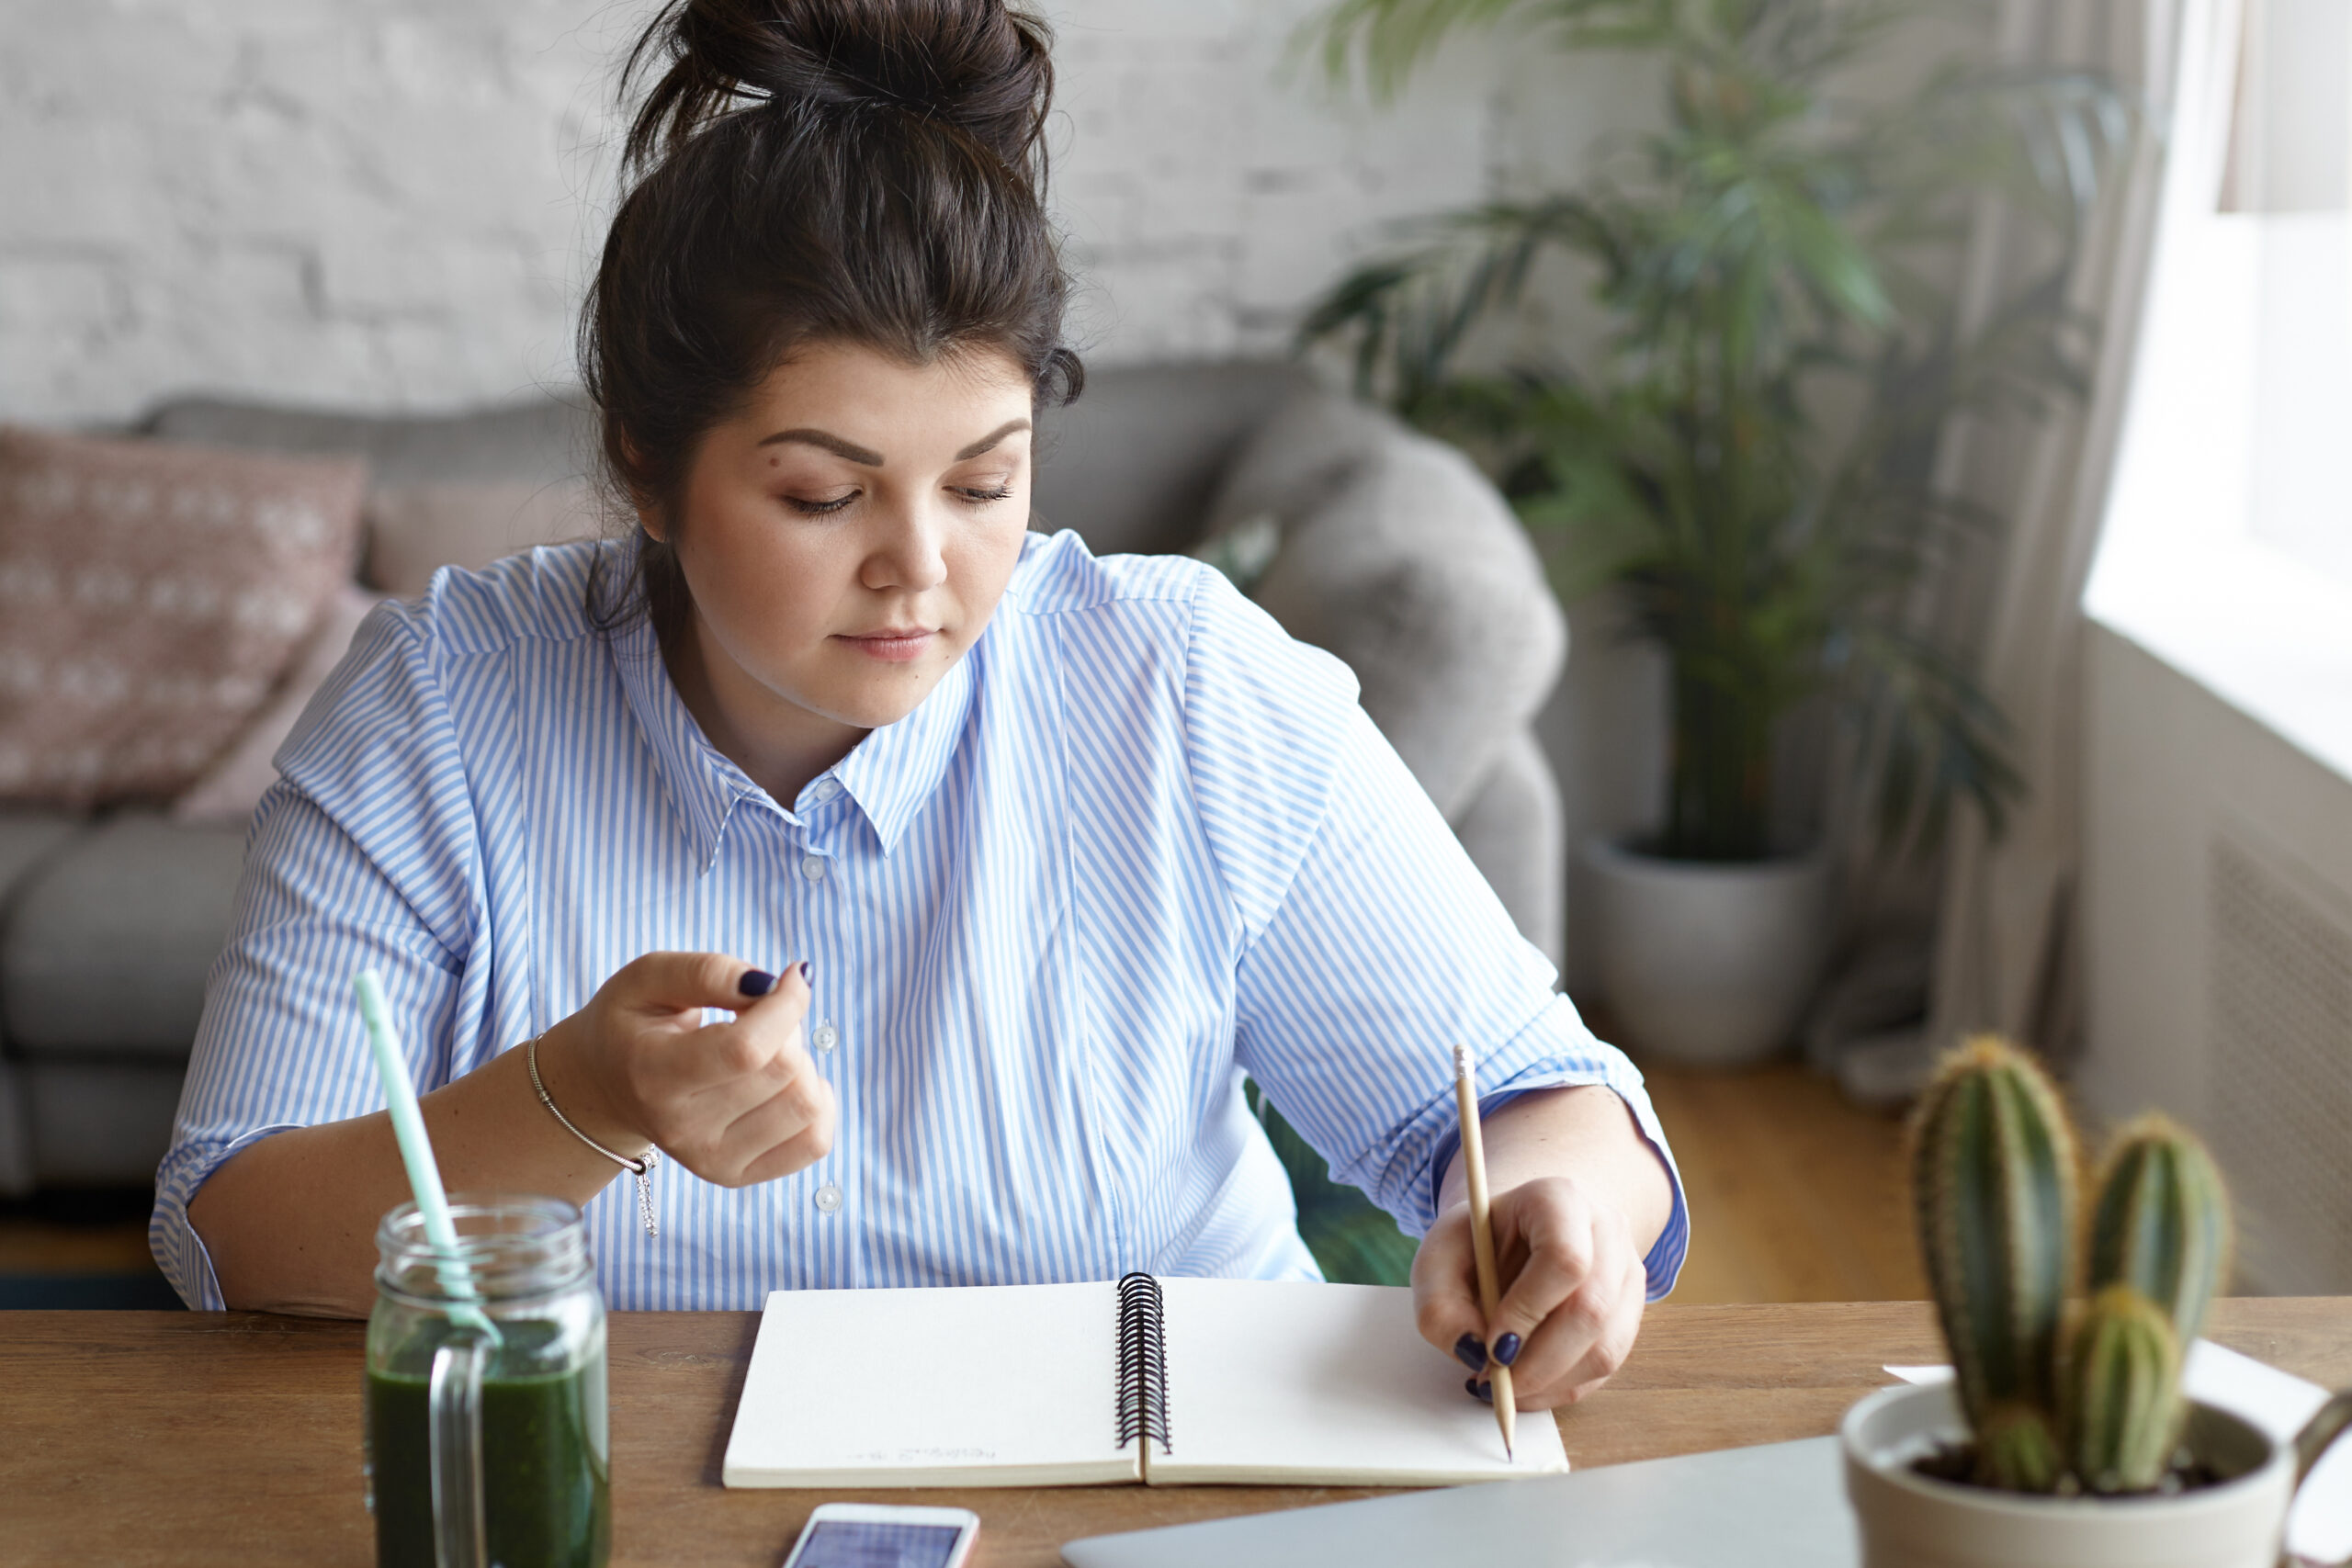 93 Thought-Provoking Journaling Prompts To Enhance Your Self-Care Routine